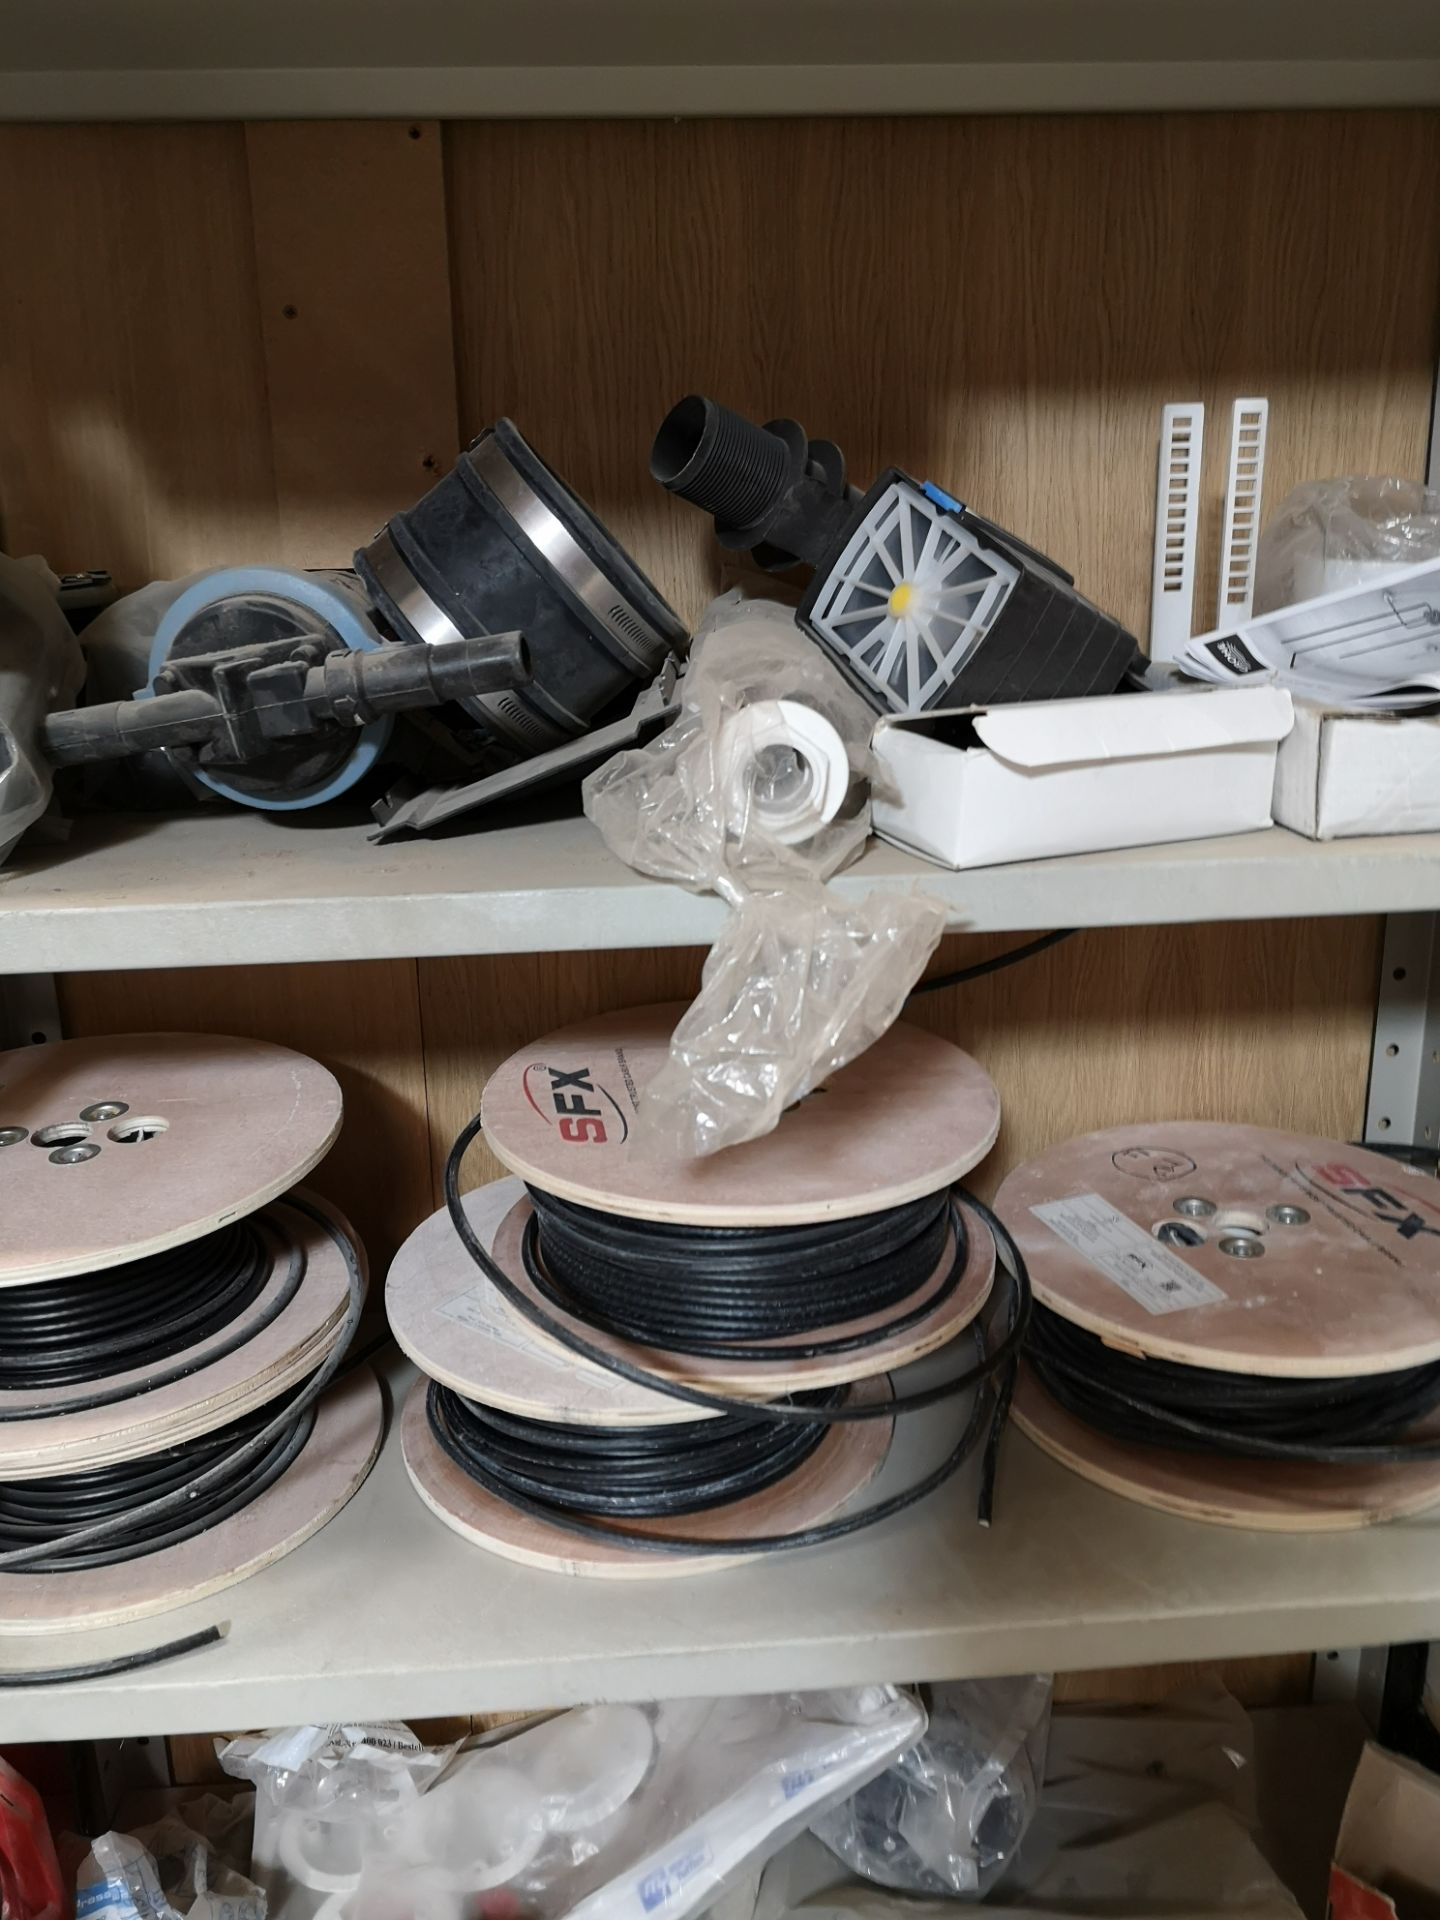 Lot 198 - Contents to Two Bays of Shelving, including coax c